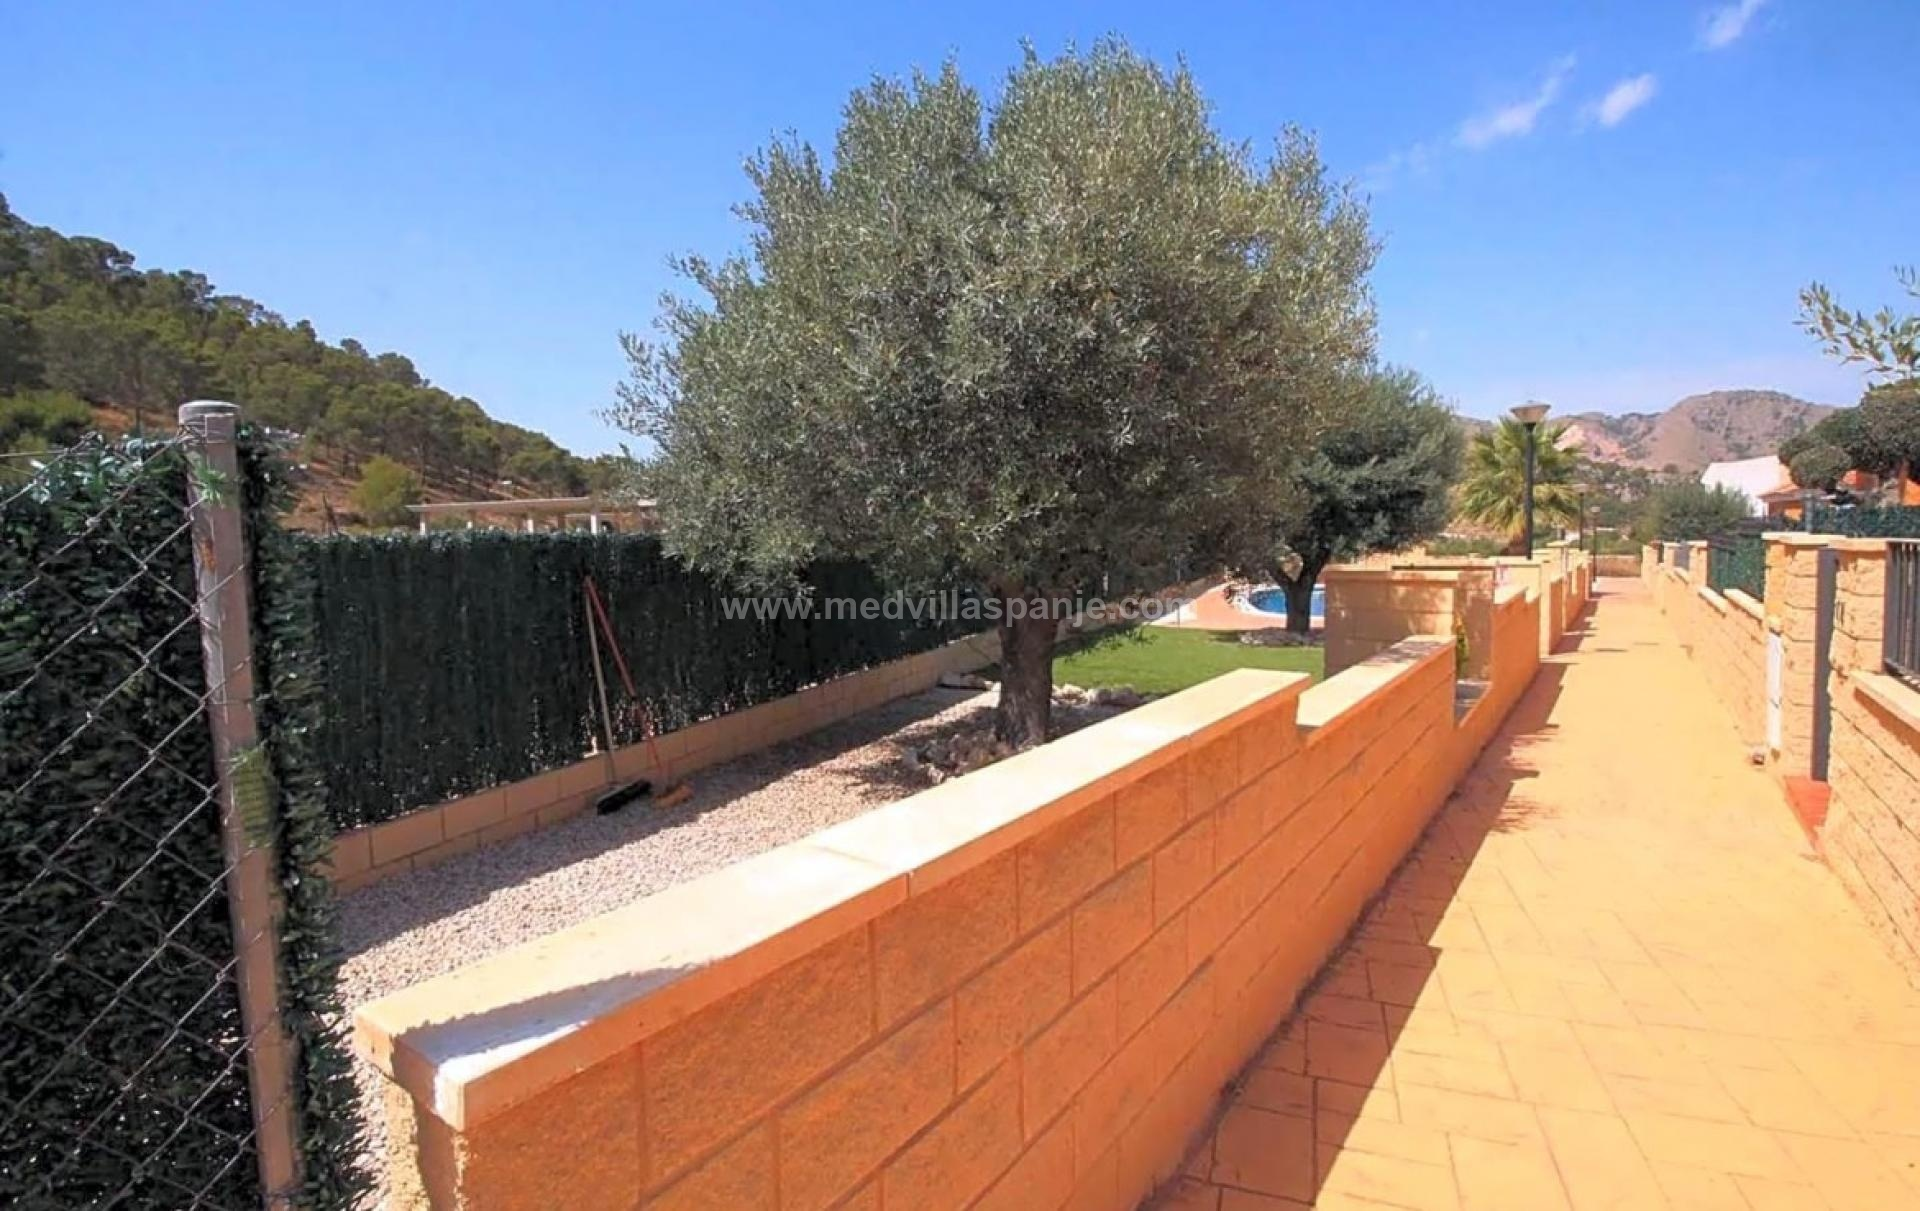 Cheap detached house for sale inland Alicante in Medvilla Spanje